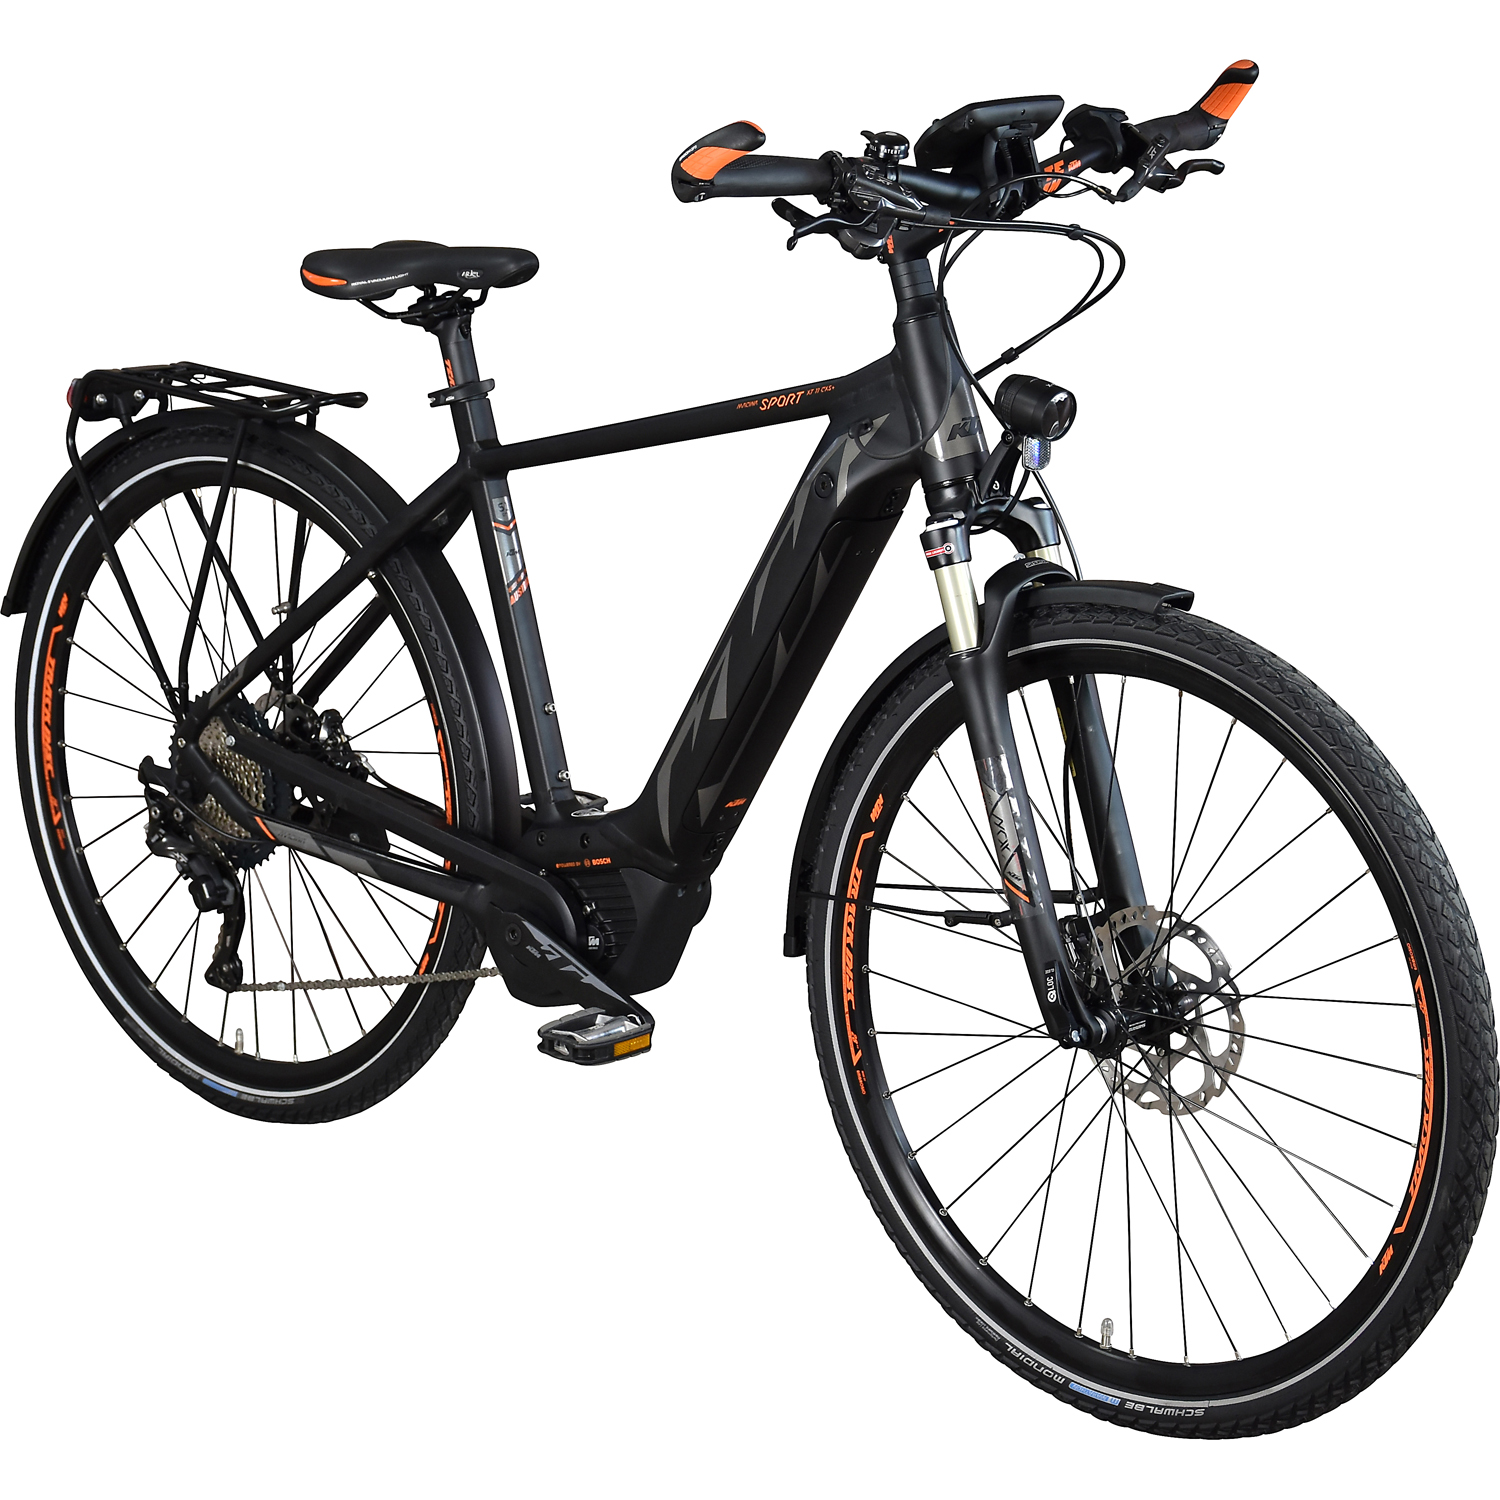 ktm macina sport xt11 cx5 elektrobike trekkingrad online shop zweirad stadler. Black Bedroom Furniture Sets. Home Design Ideas